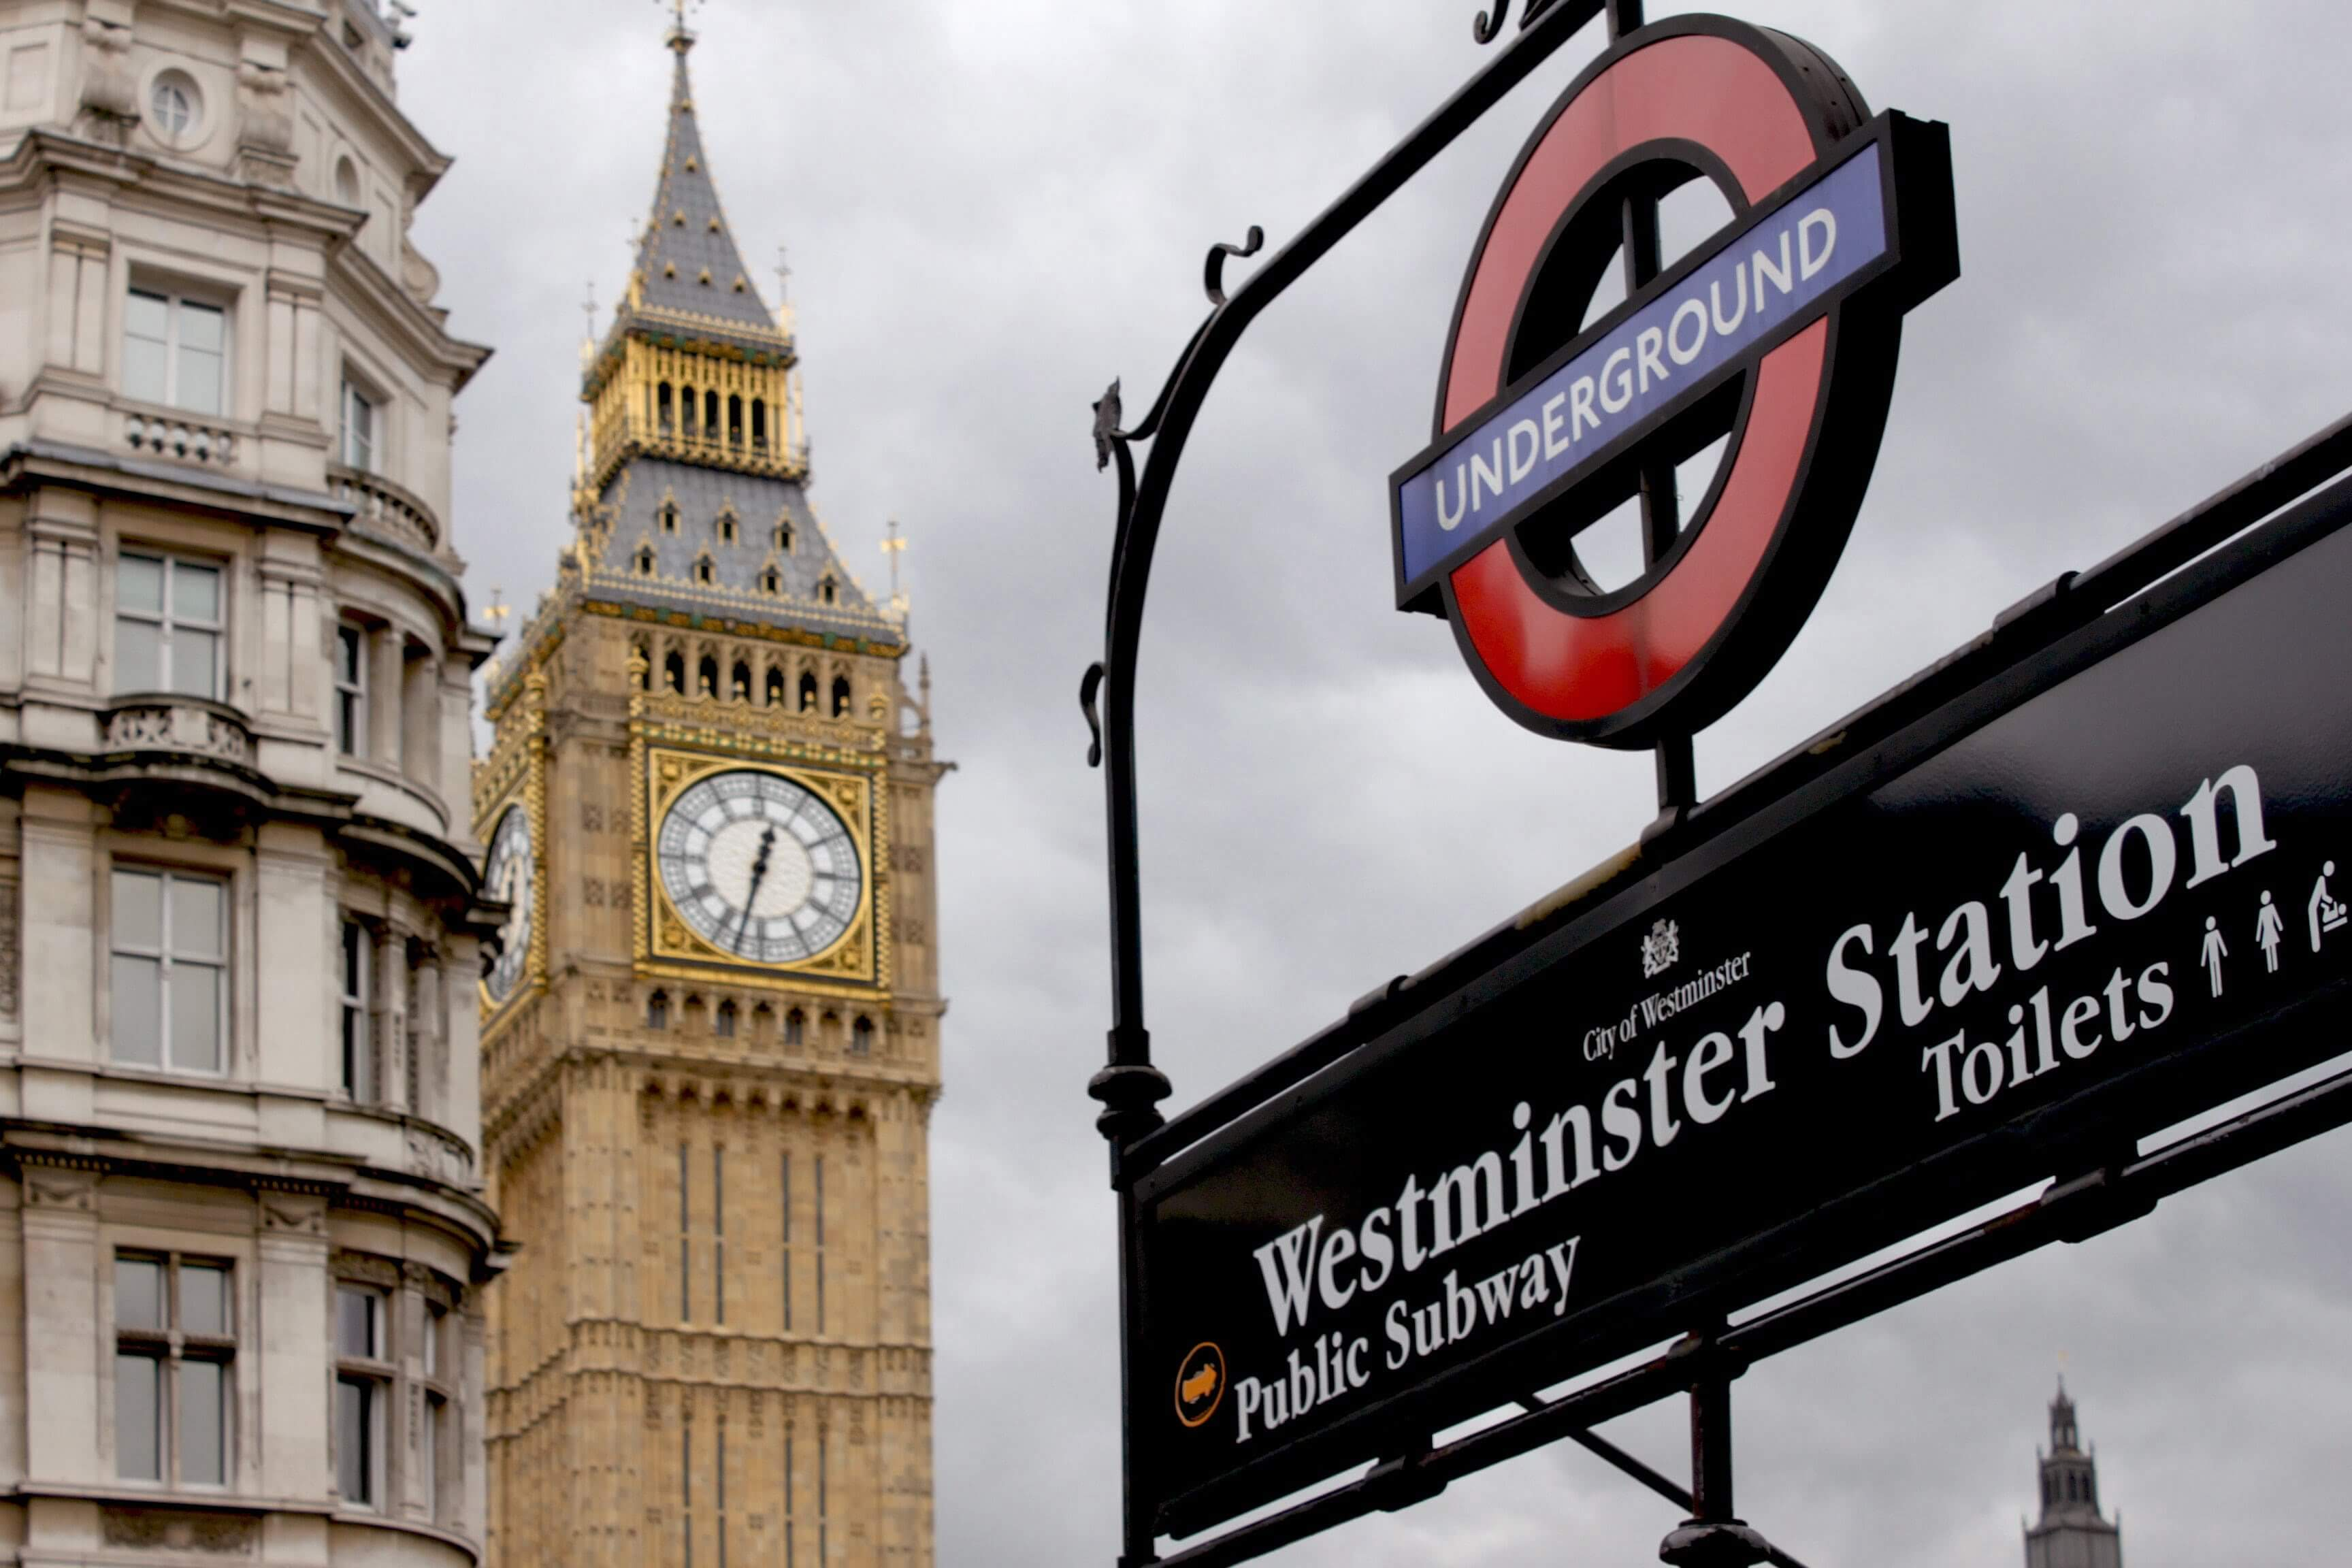 London Tube sign with Big Ben in the background